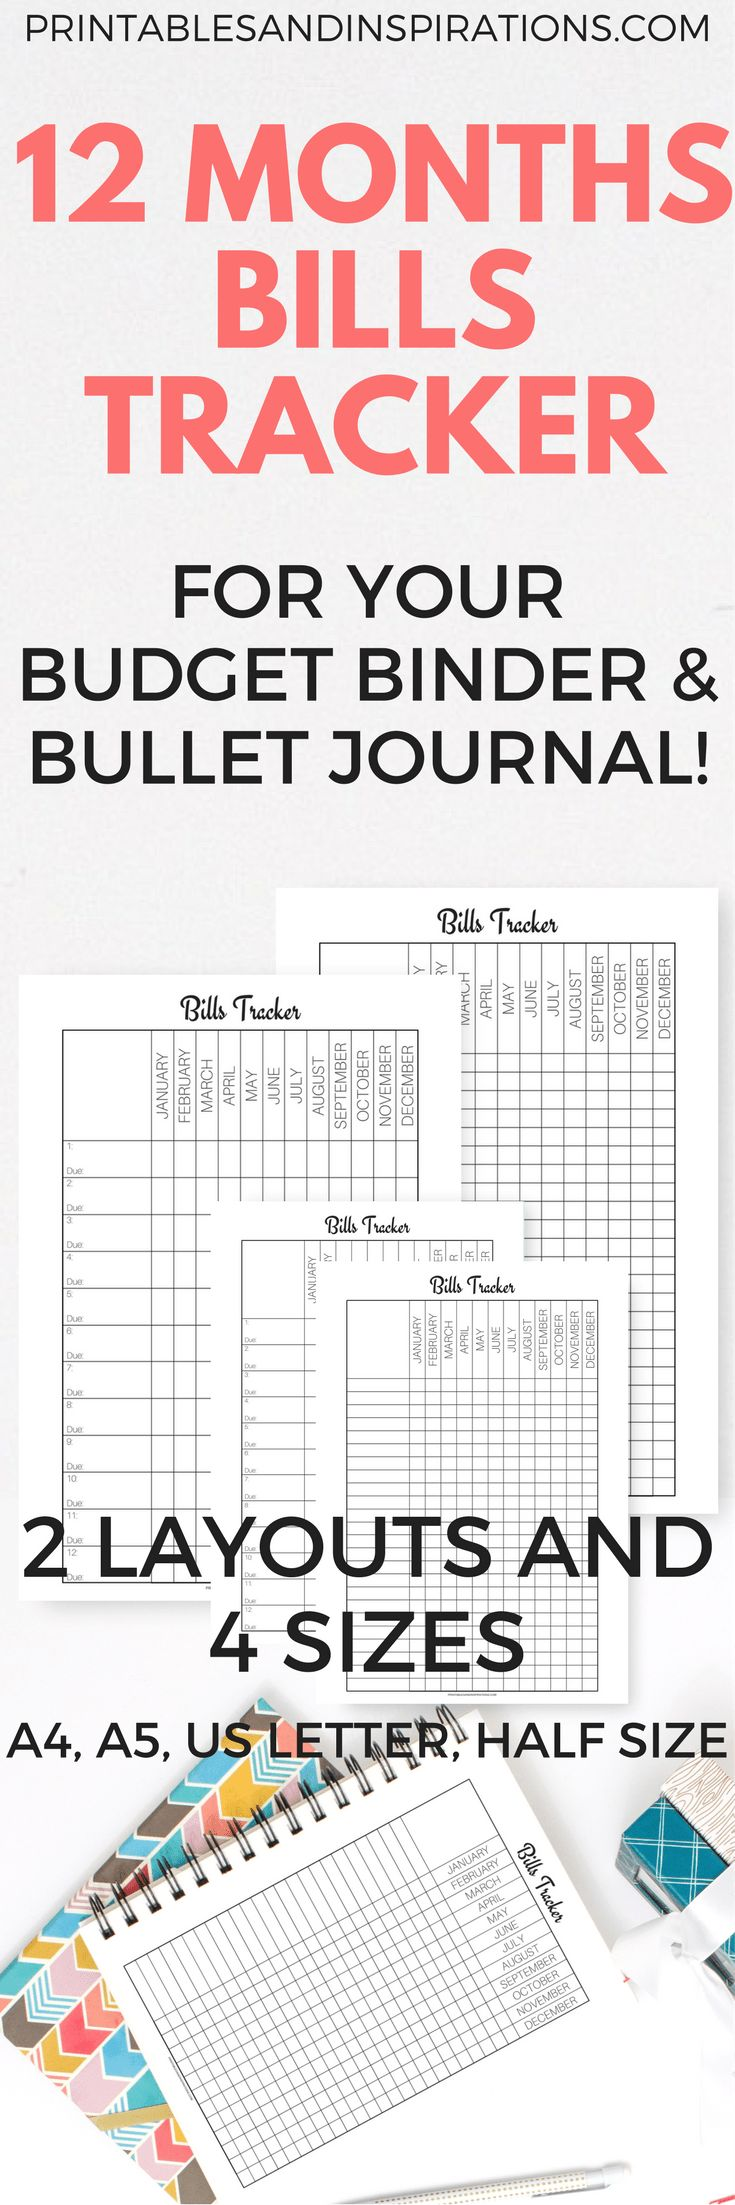 Free printable bills tracker for budget binder and bullet journal, bills organization, budget printables, expense tracker